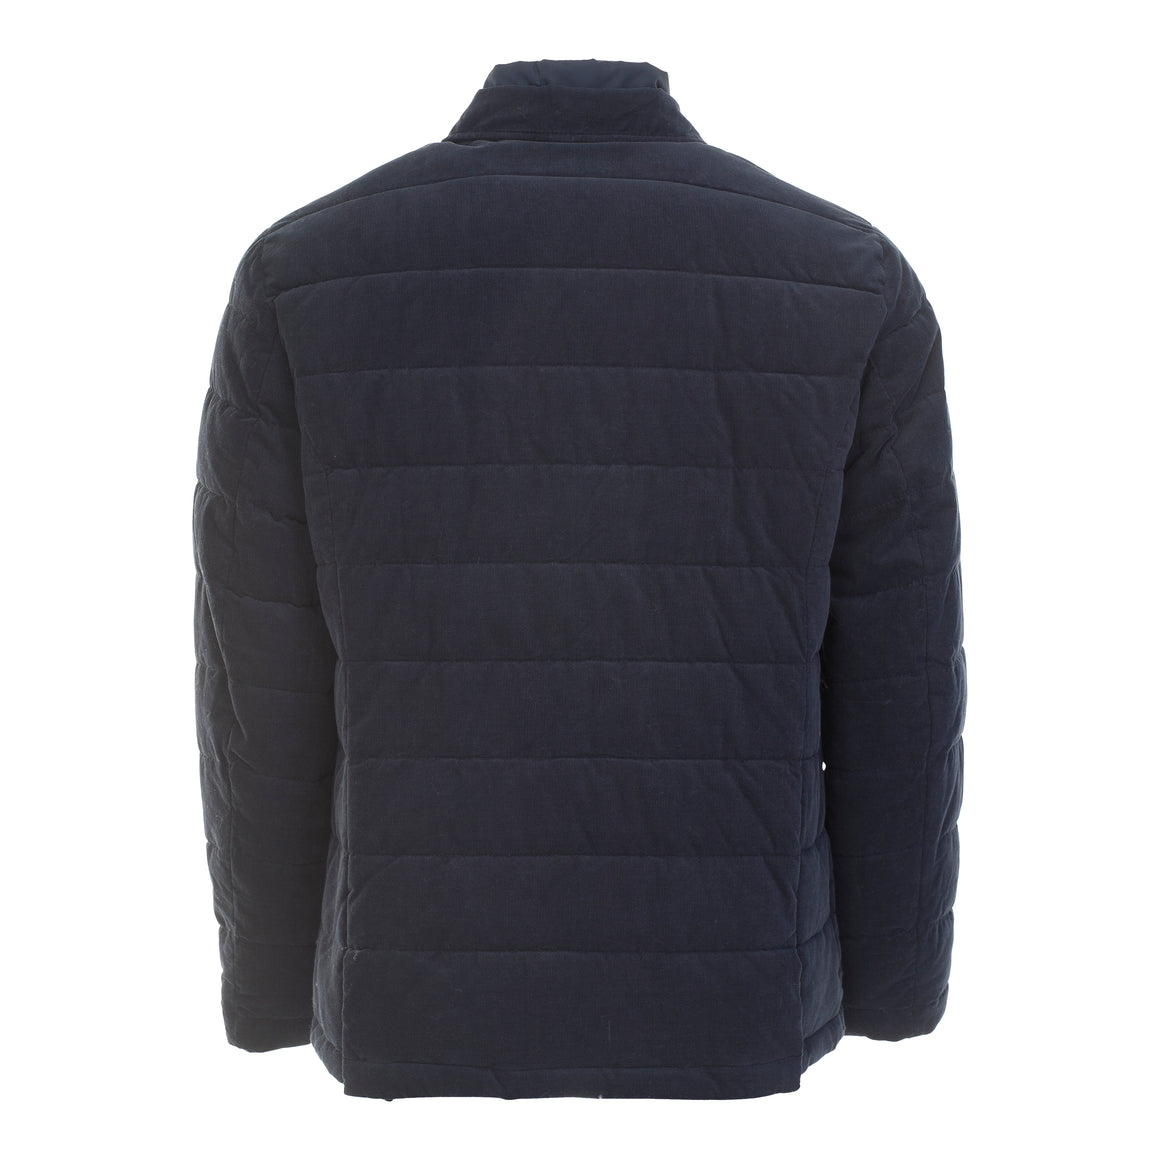 Antwerp Jacket for Men in Navy